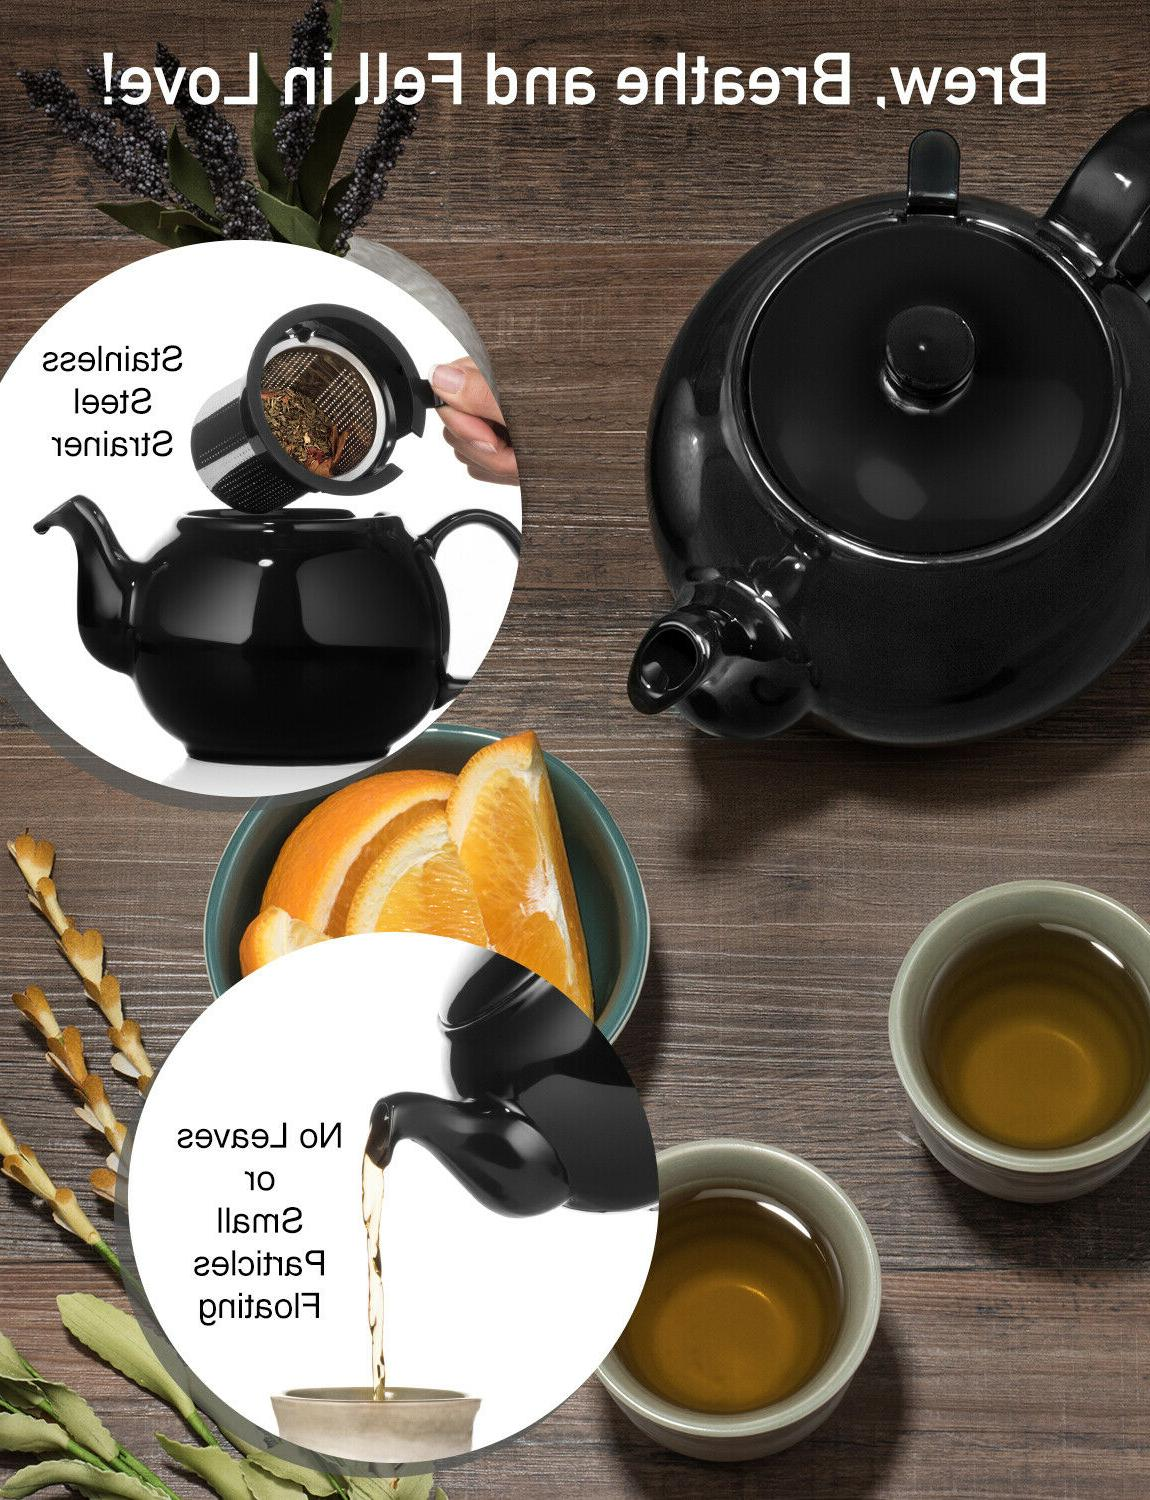 Large Teapot Removable Stainless Steel